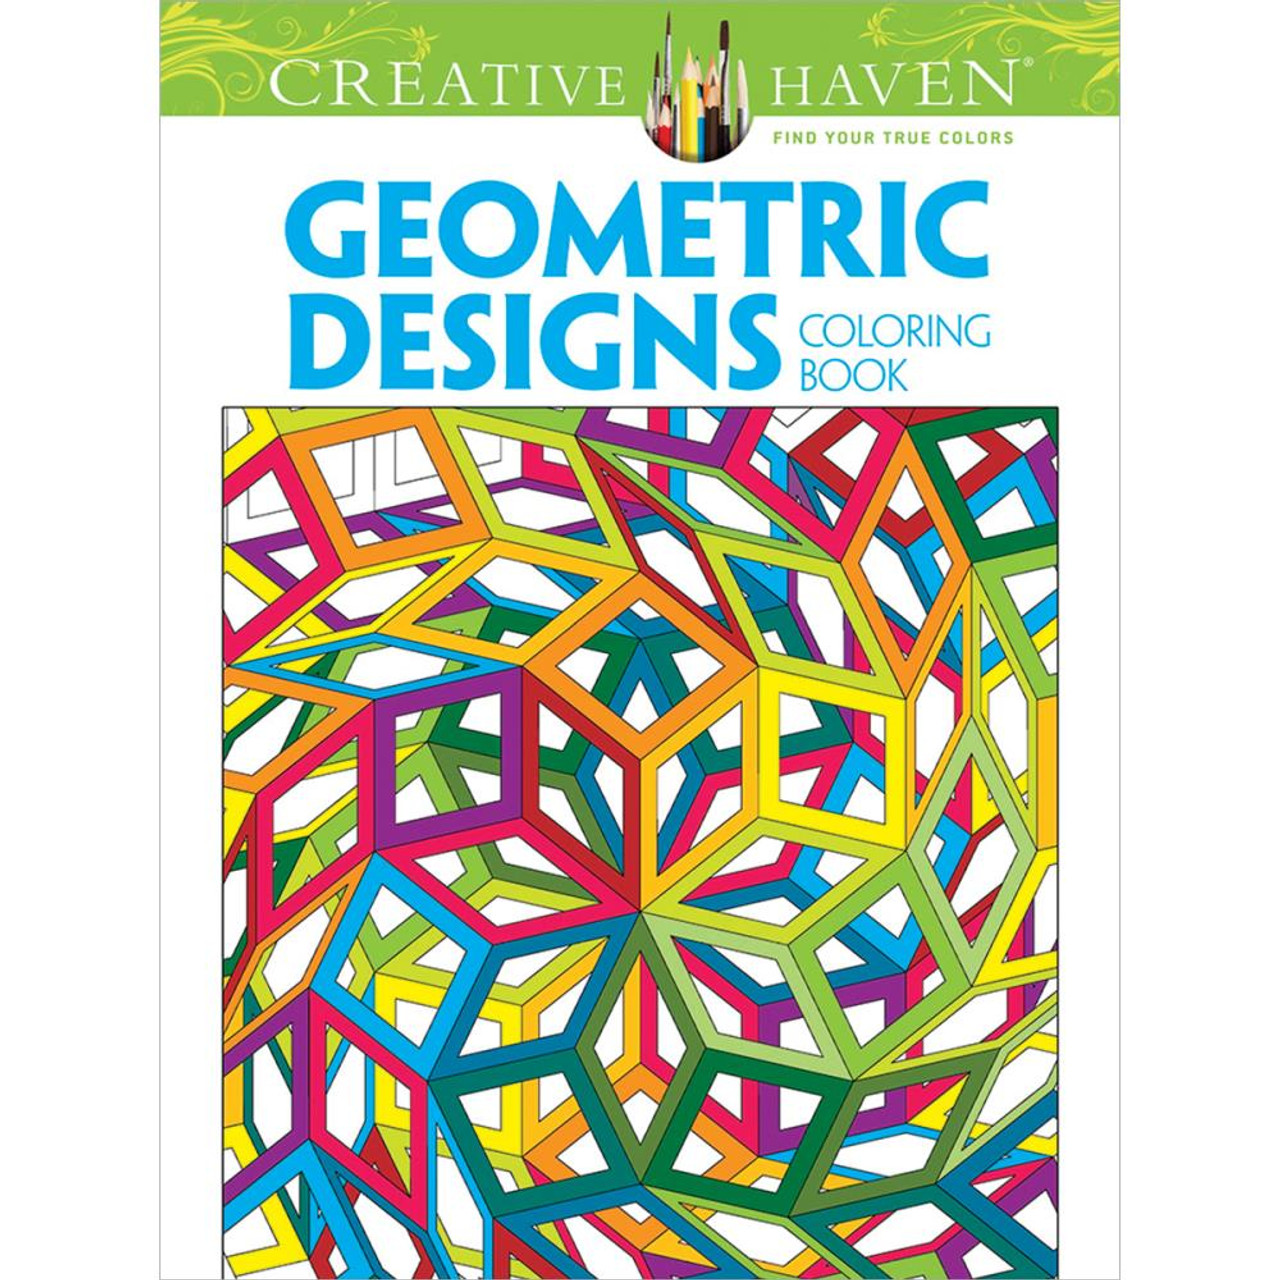 creative haven coloring book geometric designs - Creative Haven Coloring Books